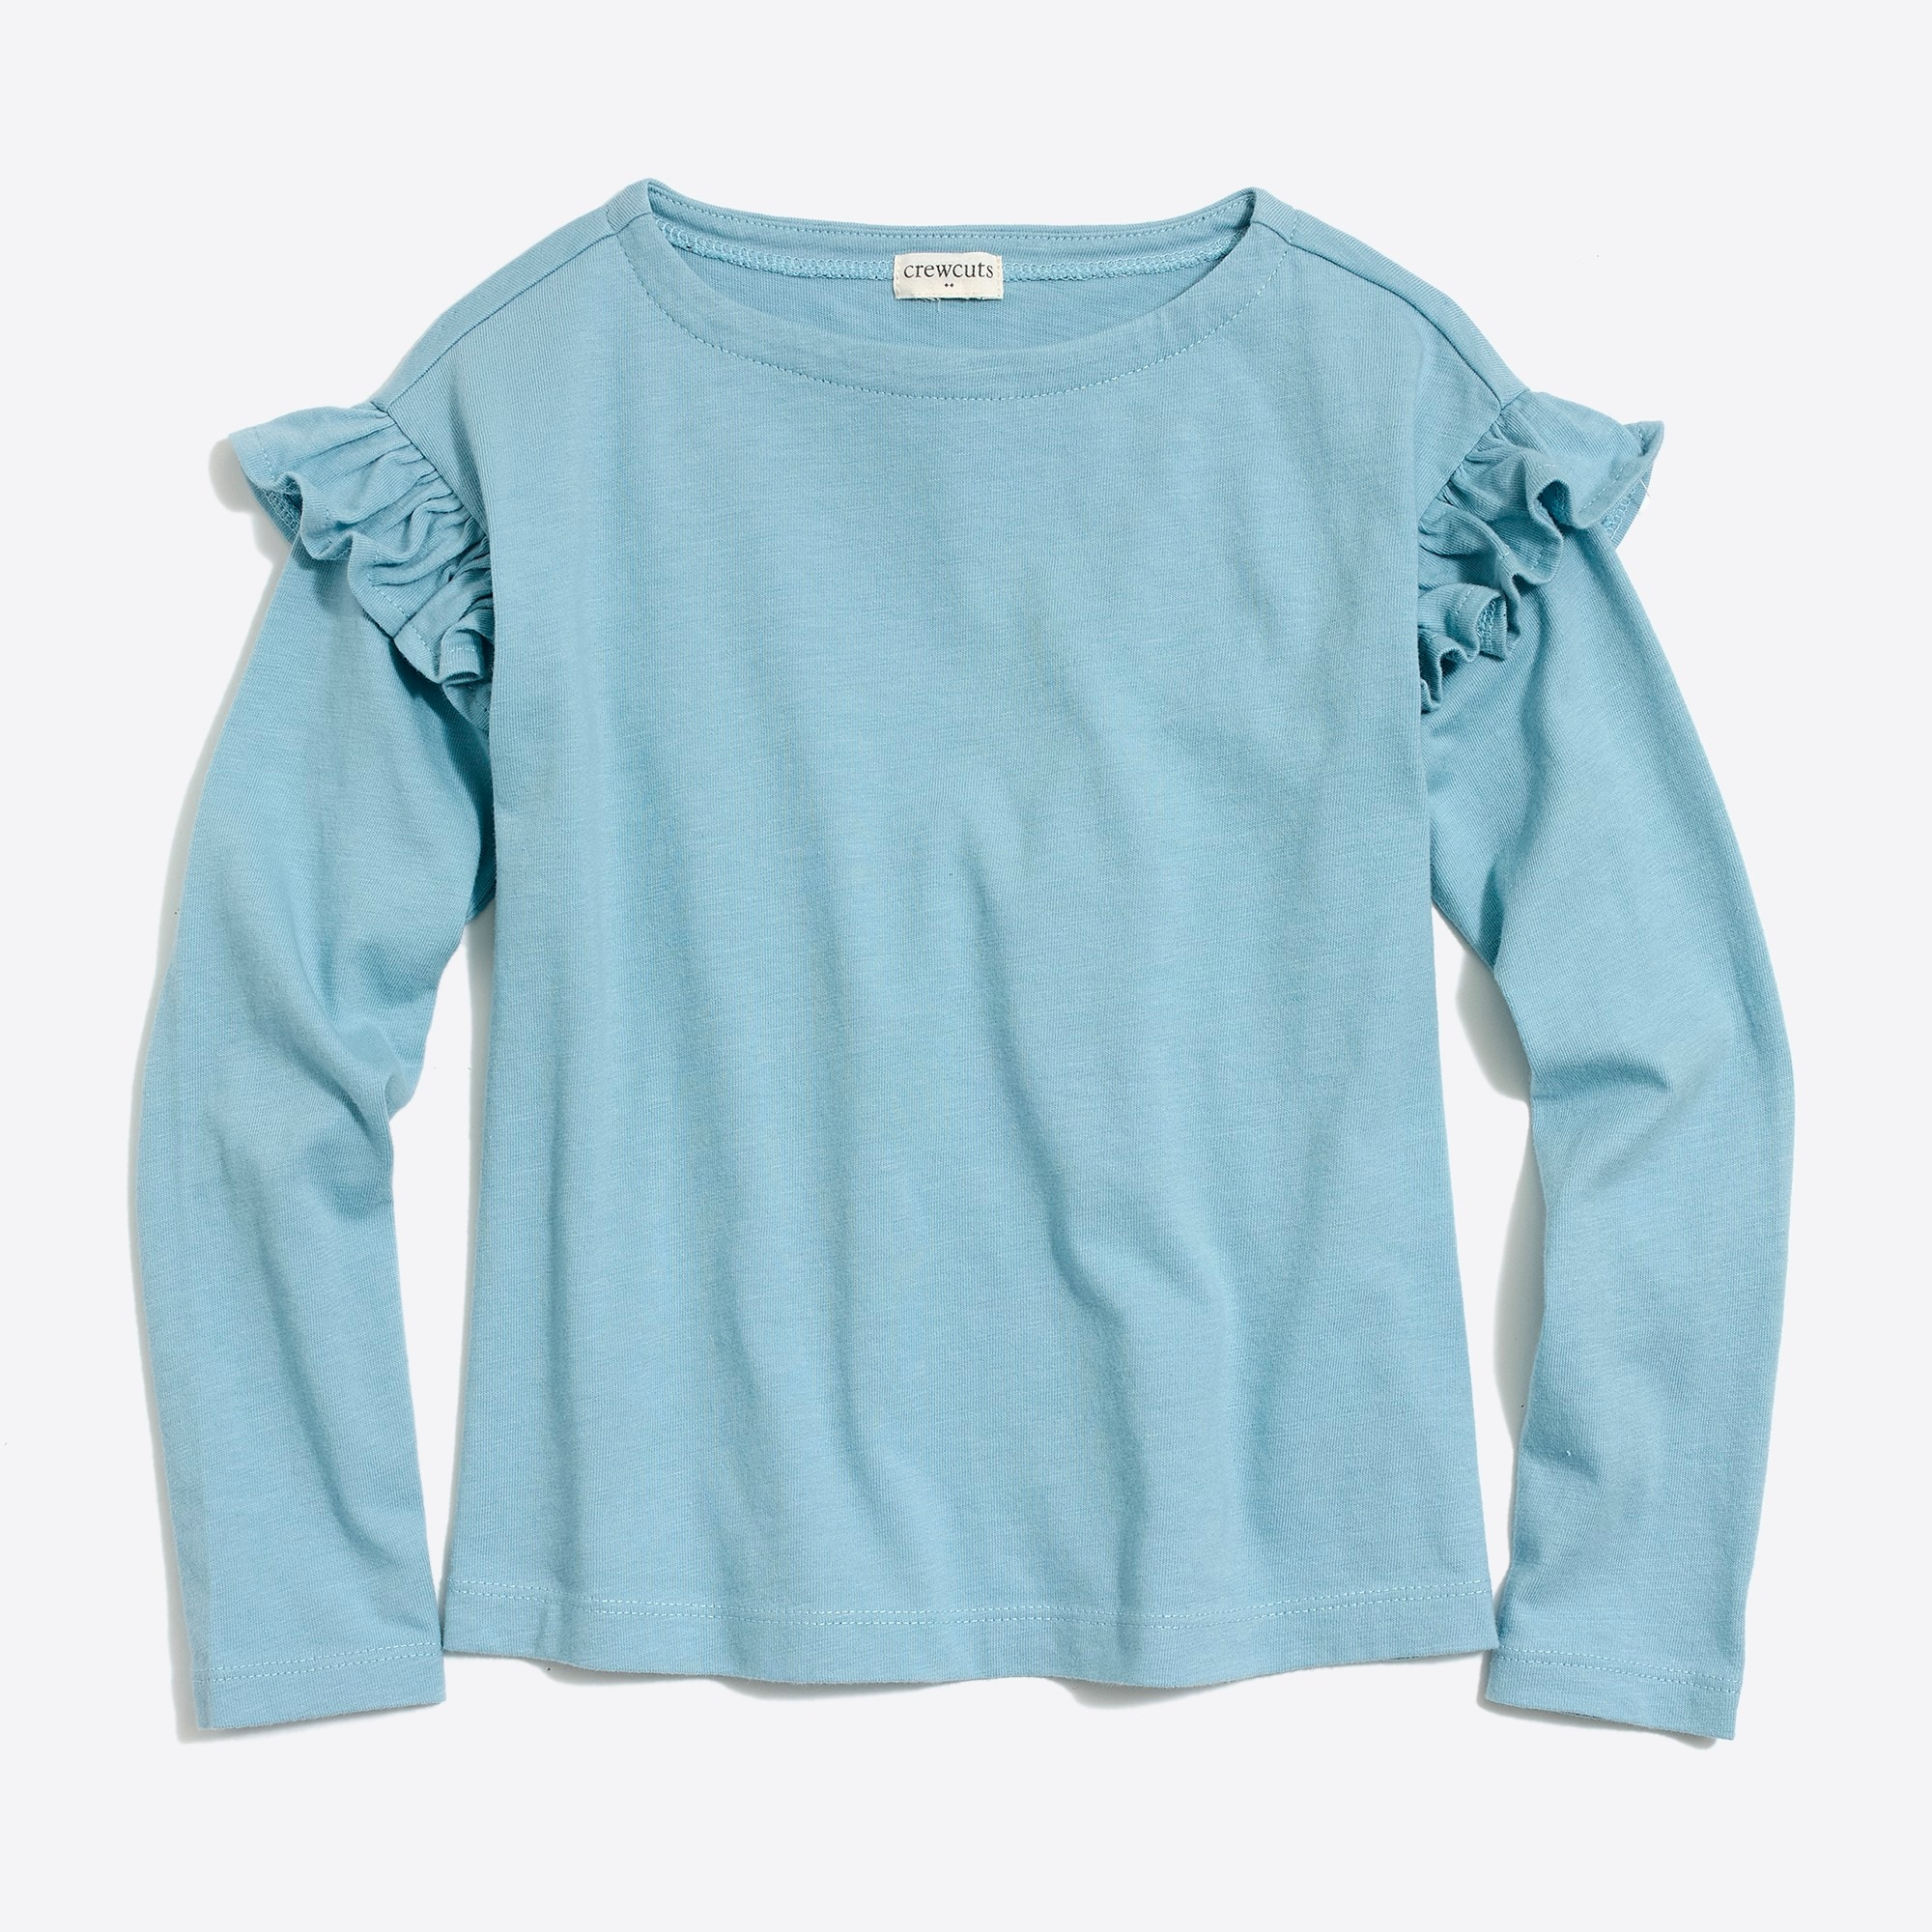 j.crew factory: girls' long-sleeve ruffle top